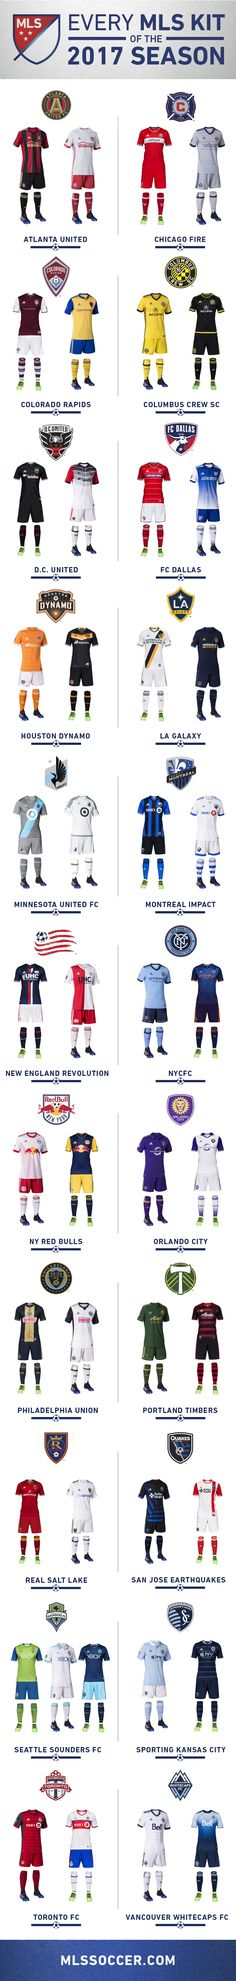 With every new MLS jersey unveiled for 2017, it's time to check out each team's full kits for the year. Graphic by Anthony Mendolia Browse all the new 2017 MLS jerseys